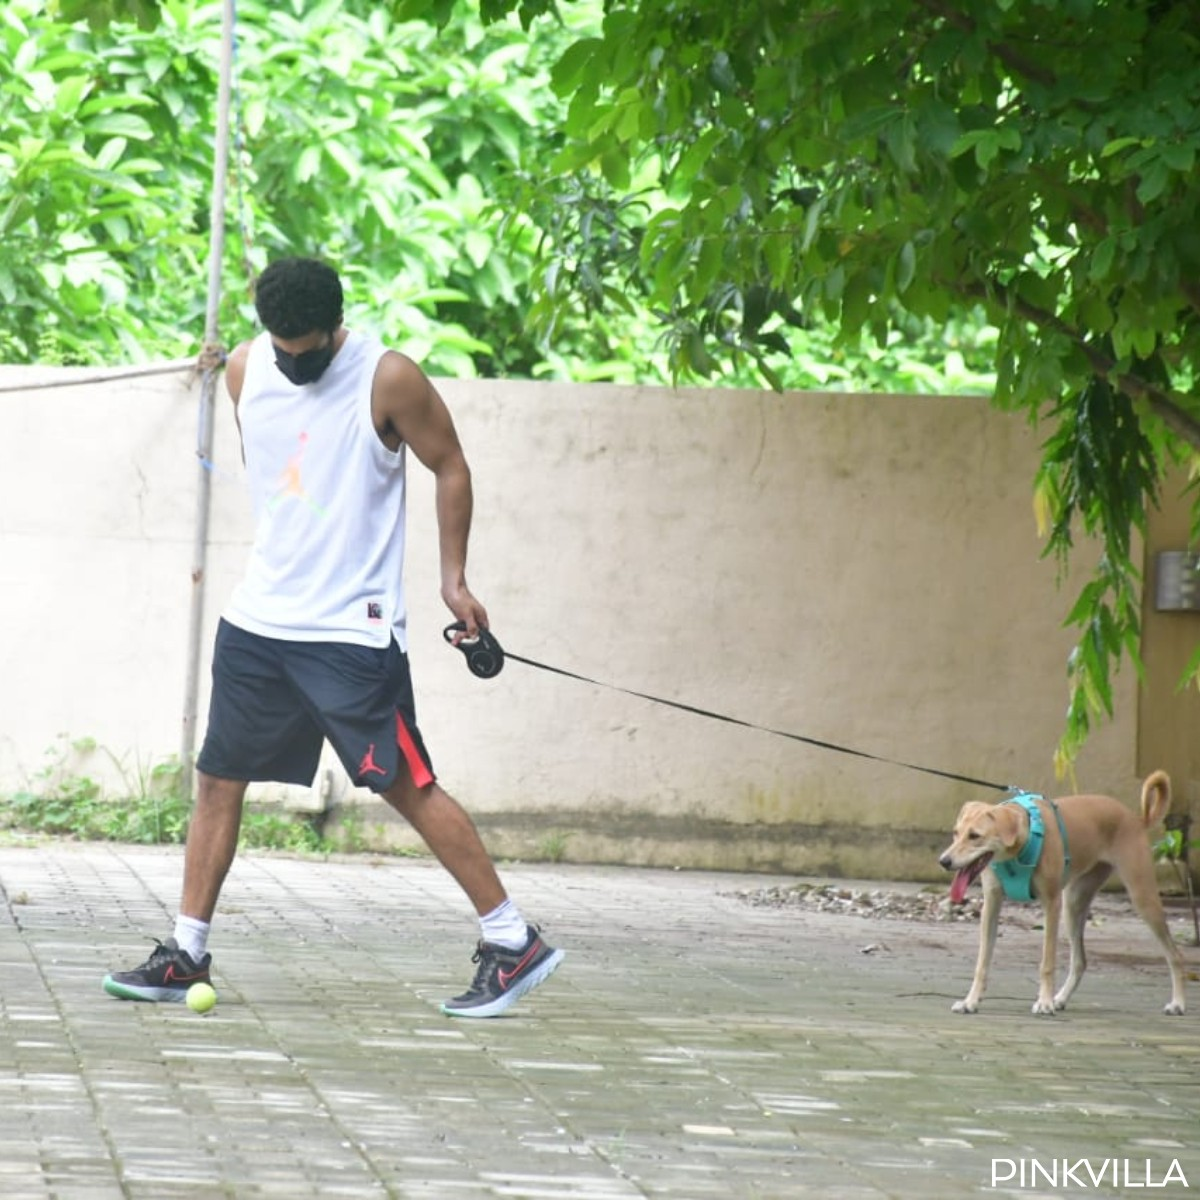 PHOTOS: Aditya Roy Kapur opts for cool casuals as he gets clicked with his dog